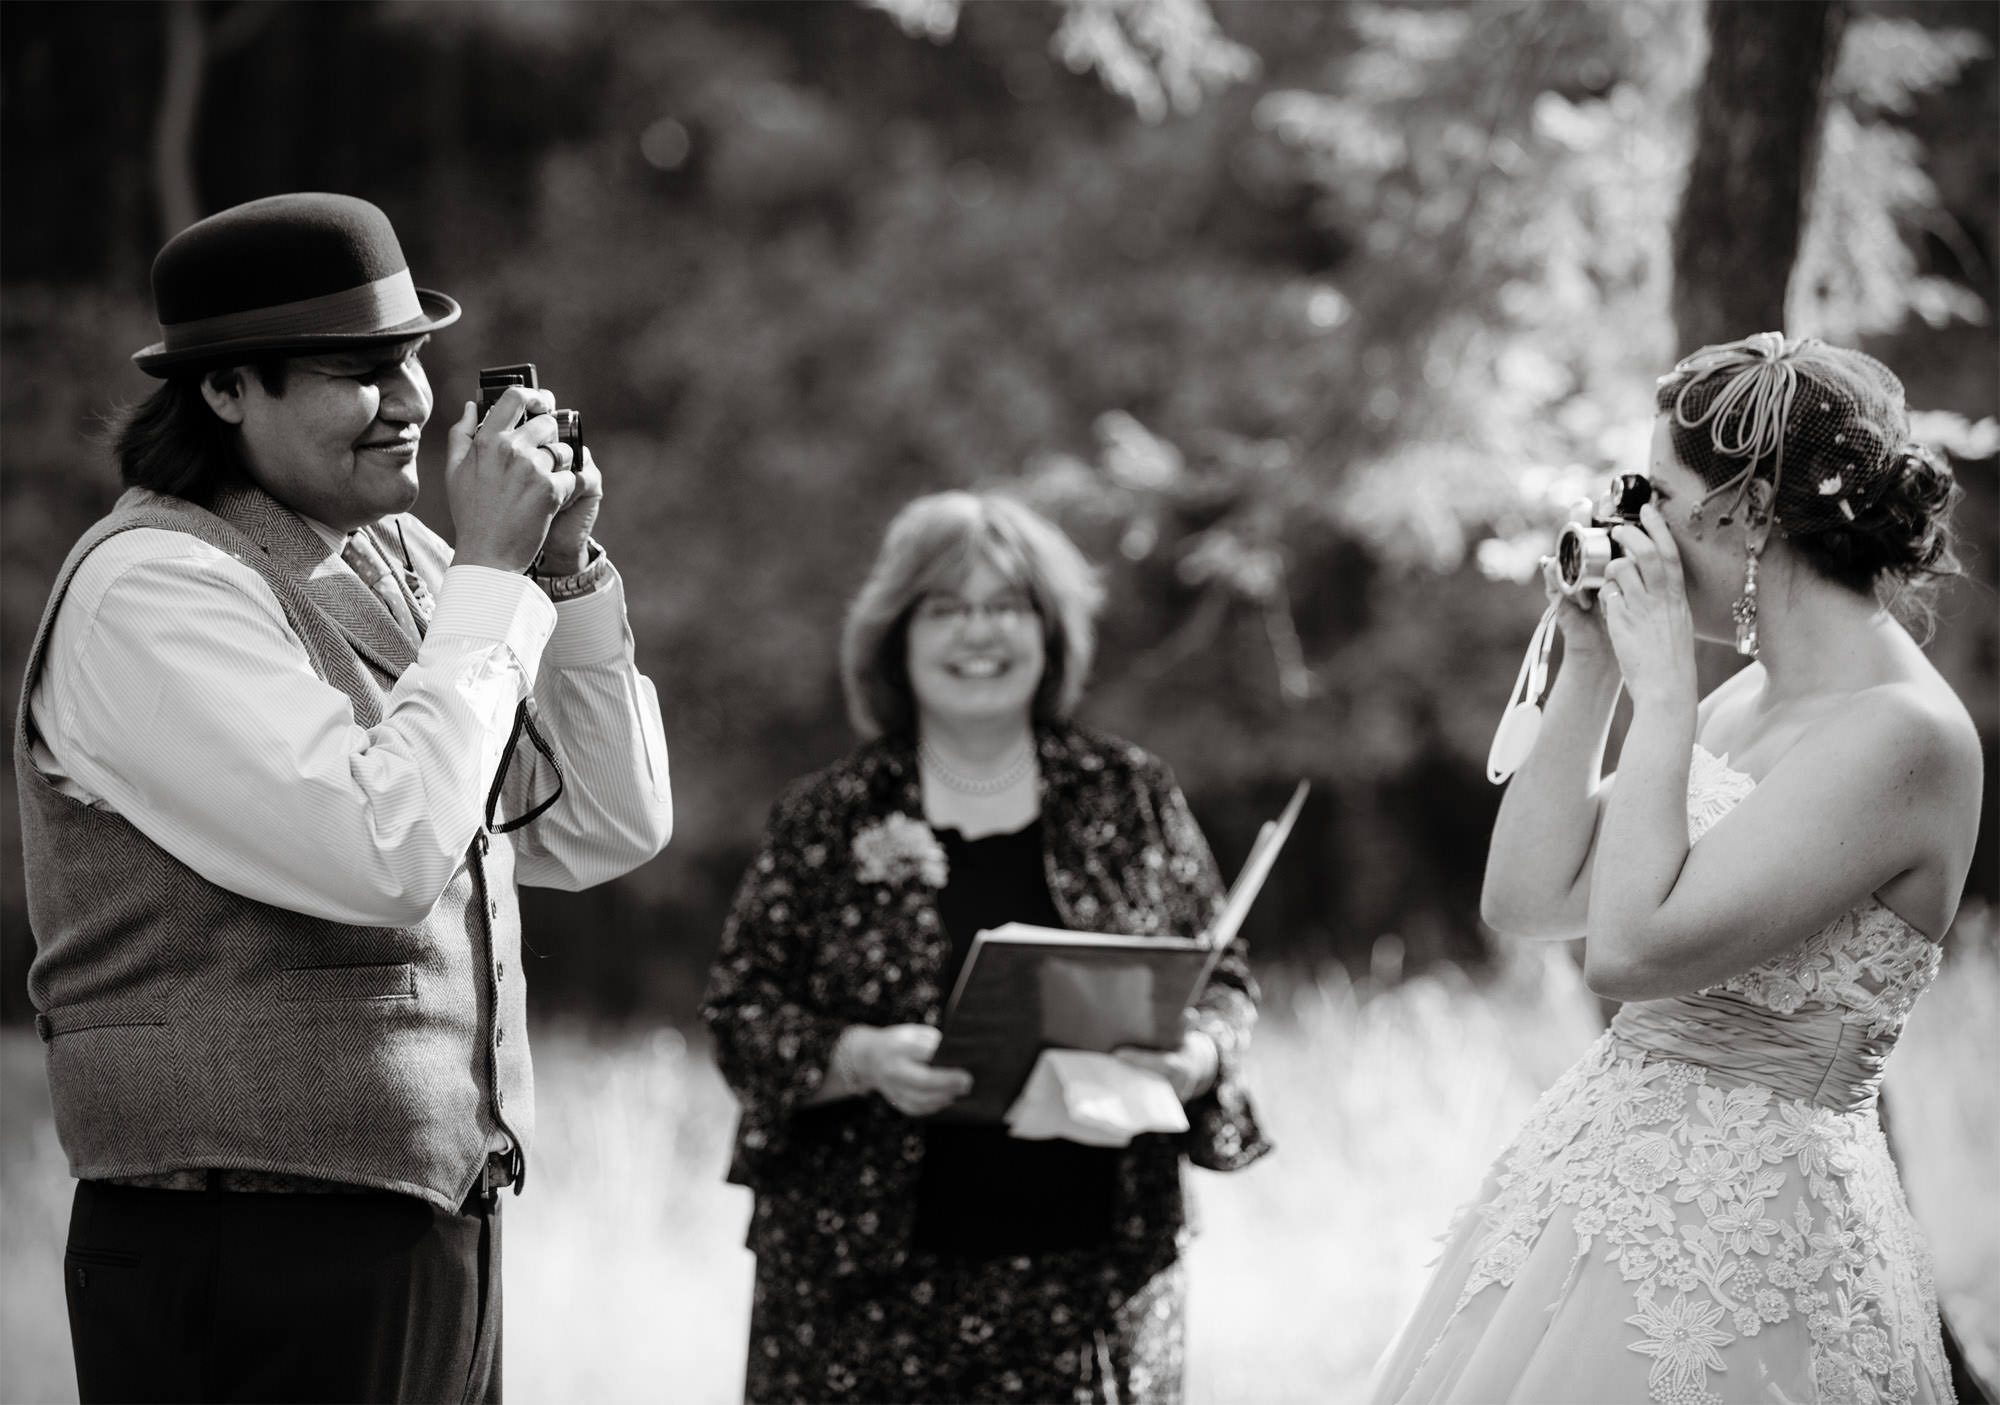 The couple takes pictures of each other during their wedding ceremony at Woodend Sanctuary and Mansion.